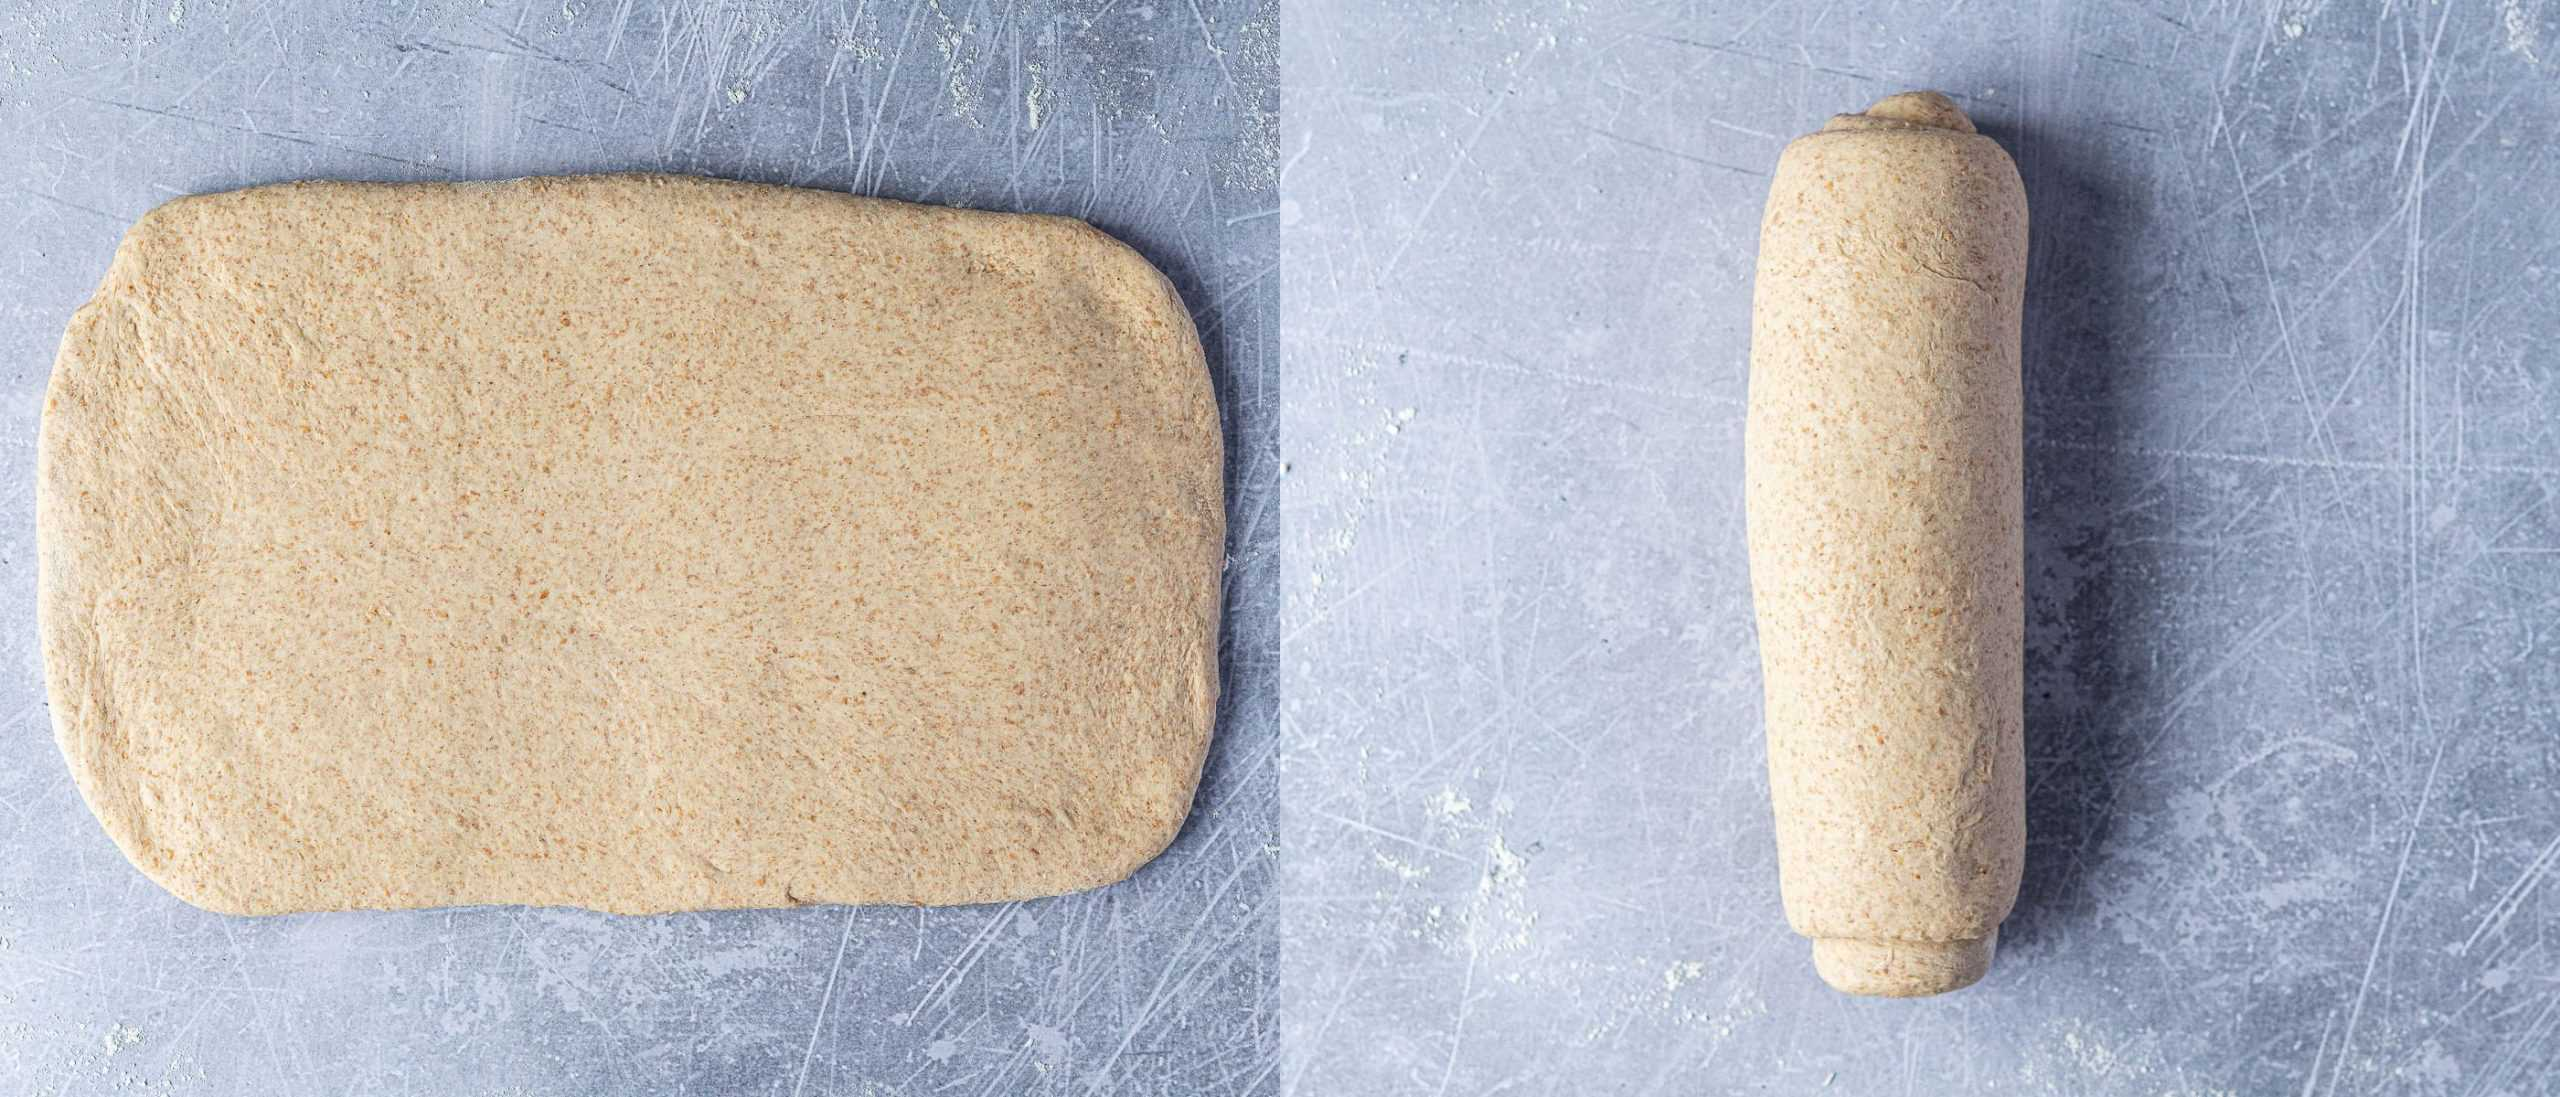 Step 4, a two image collage of rolling the dough out into a rectangle and rolling it up into a log.